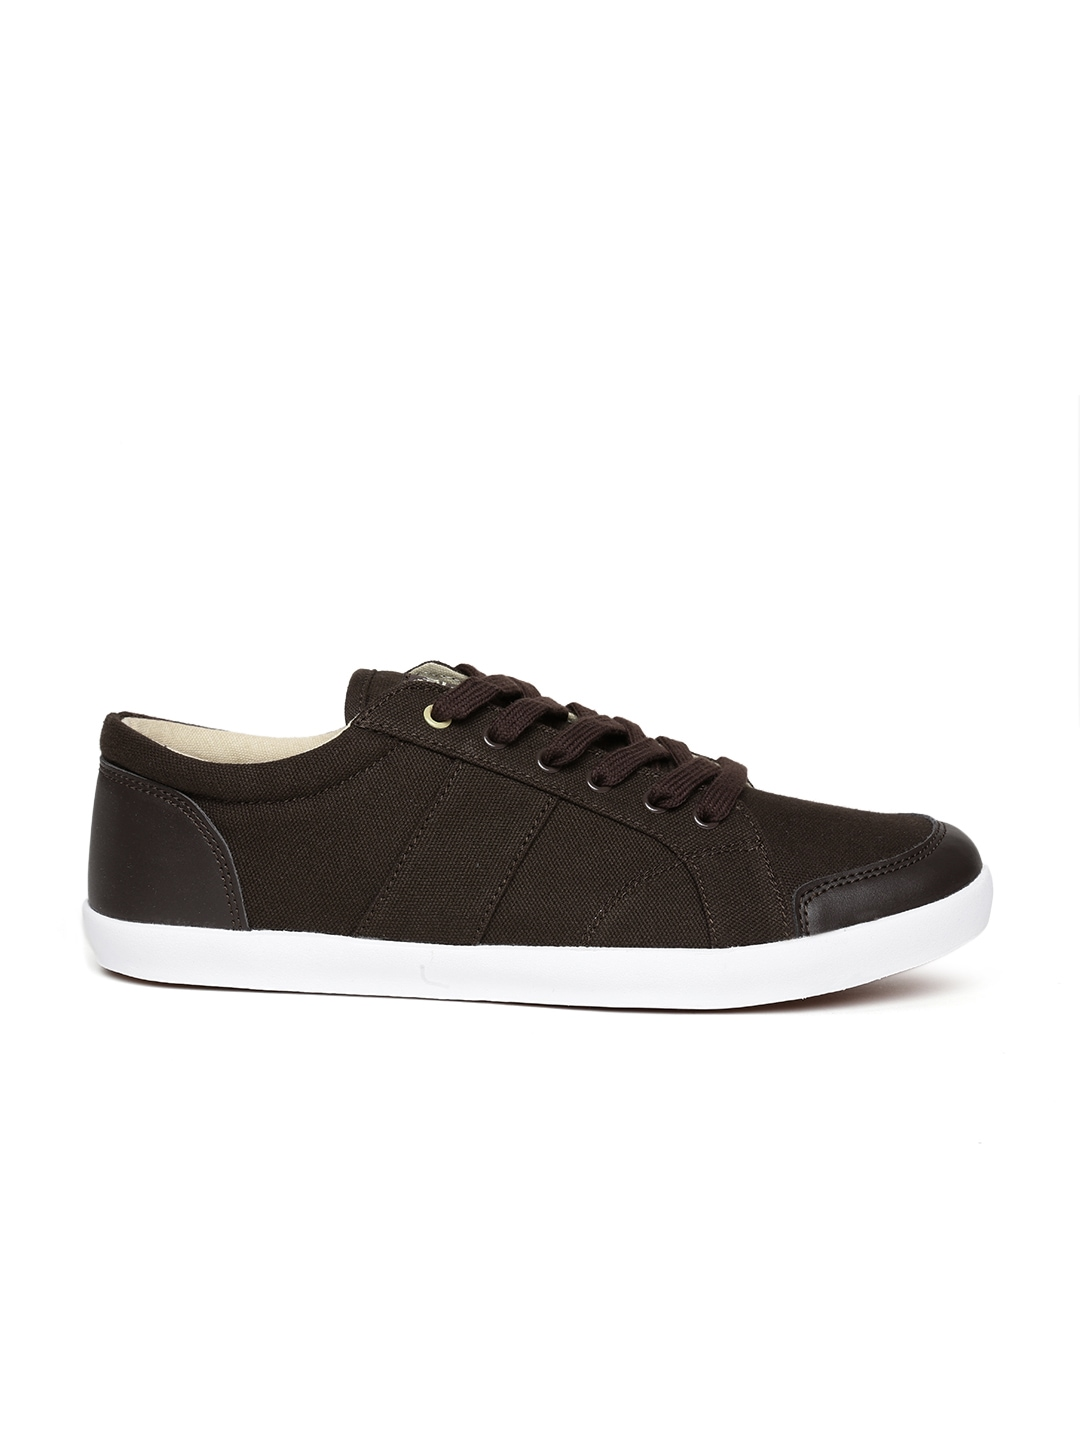 myntra roadster brown canvas shoes 856902 buy myntra